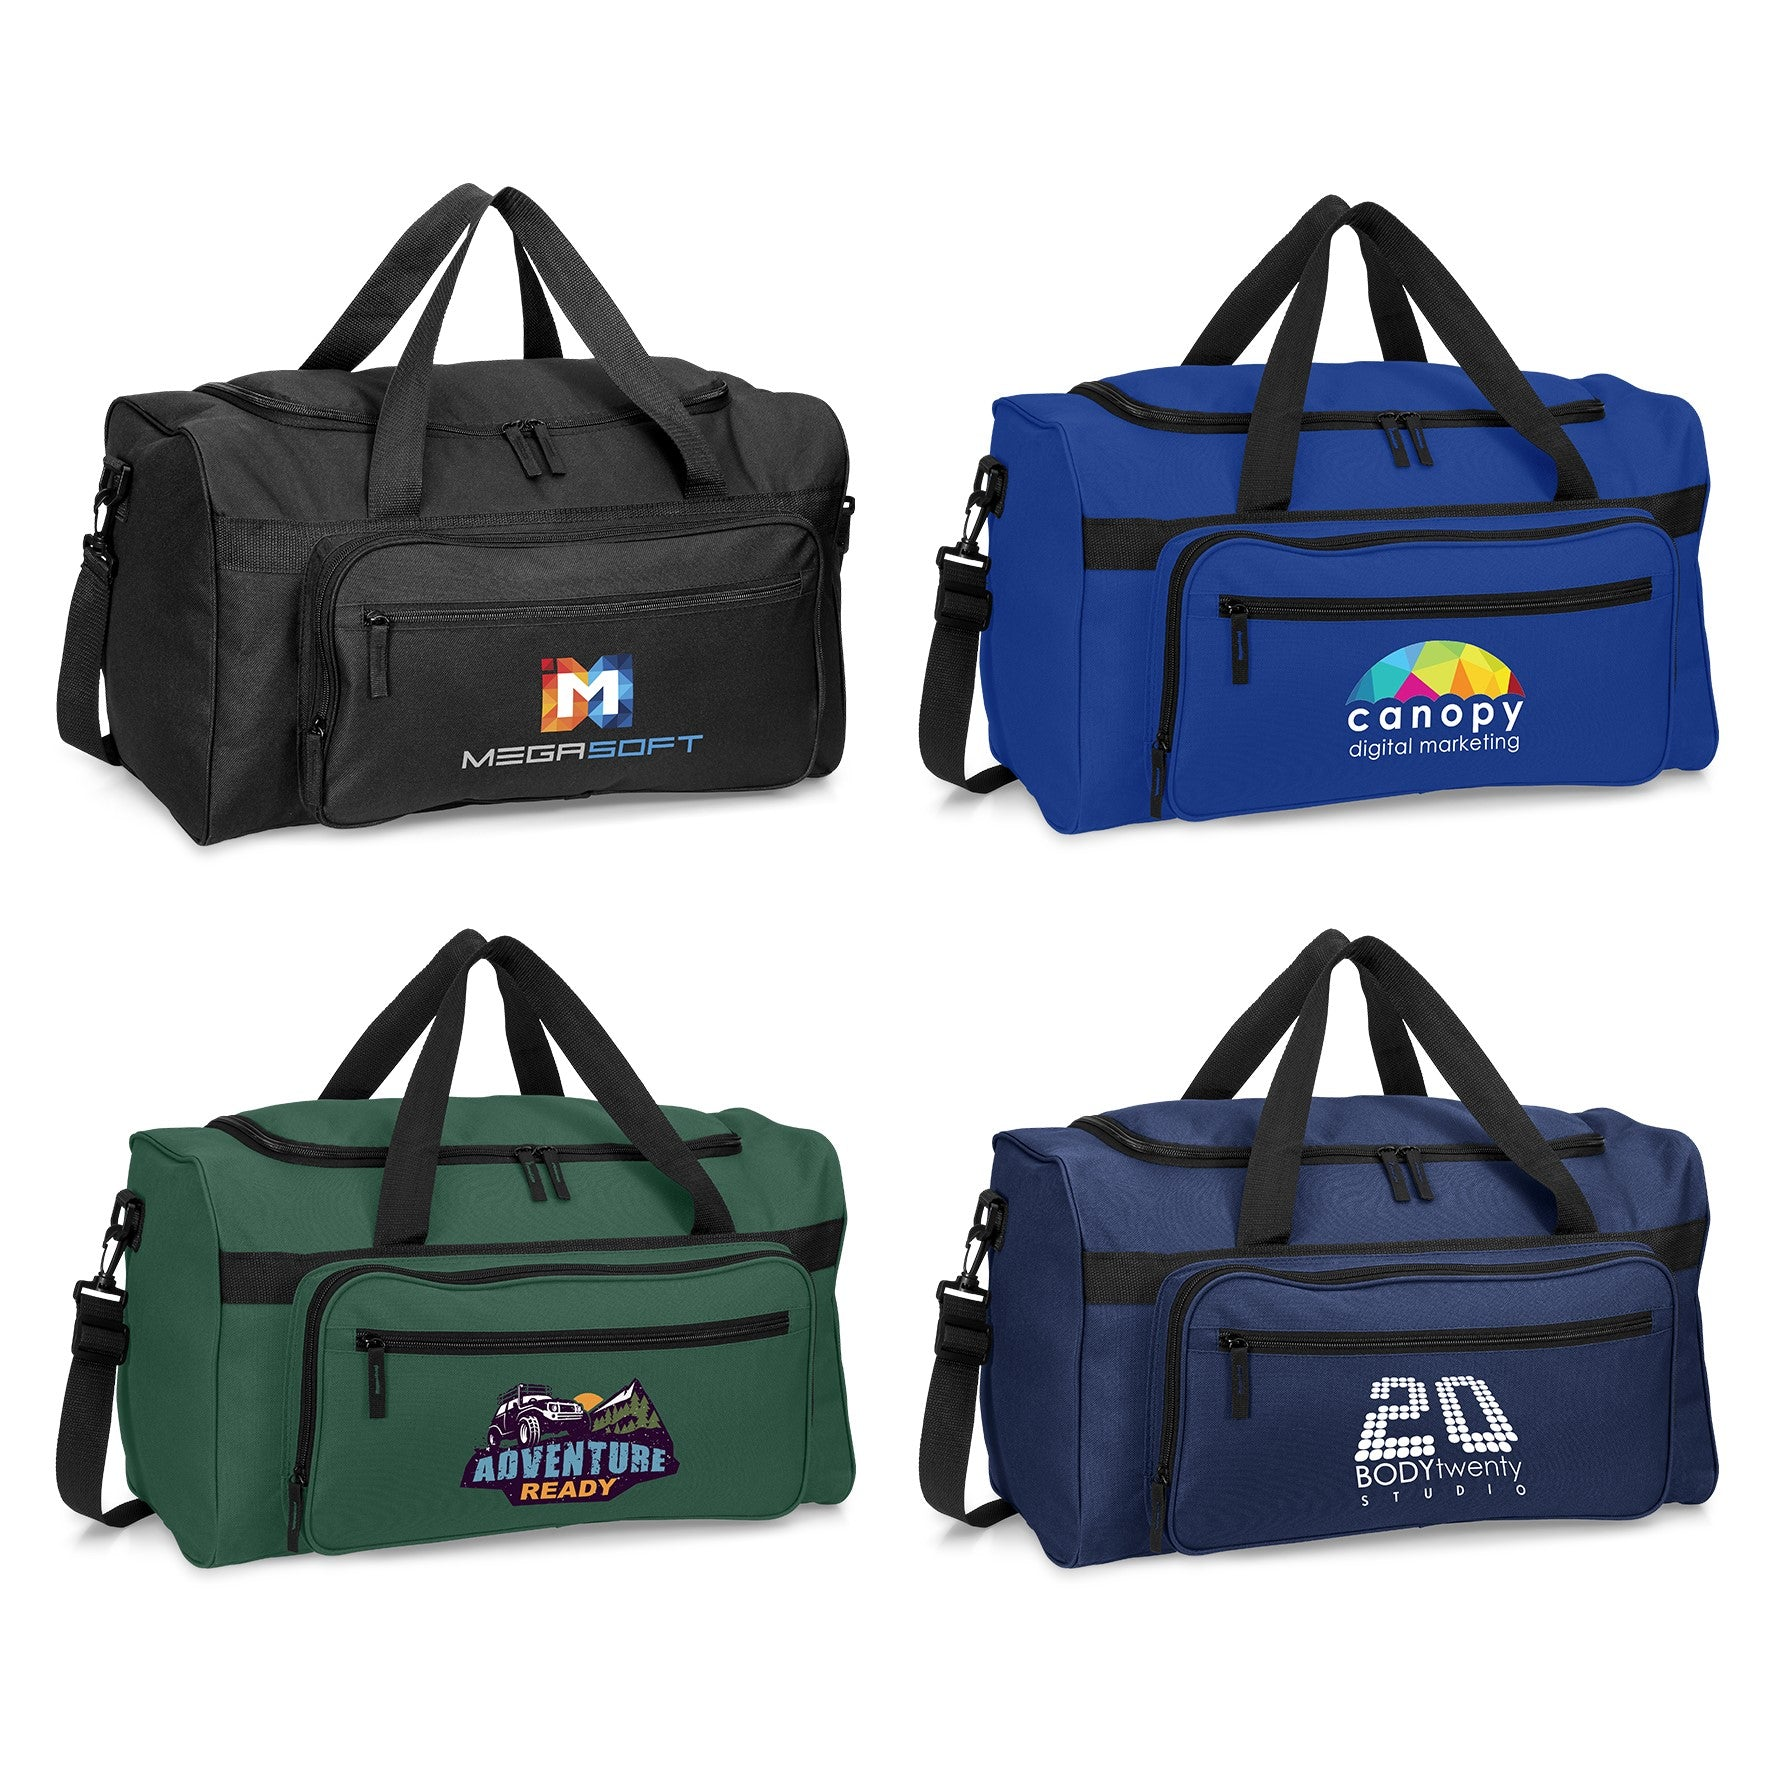 Tournament Sports Bag